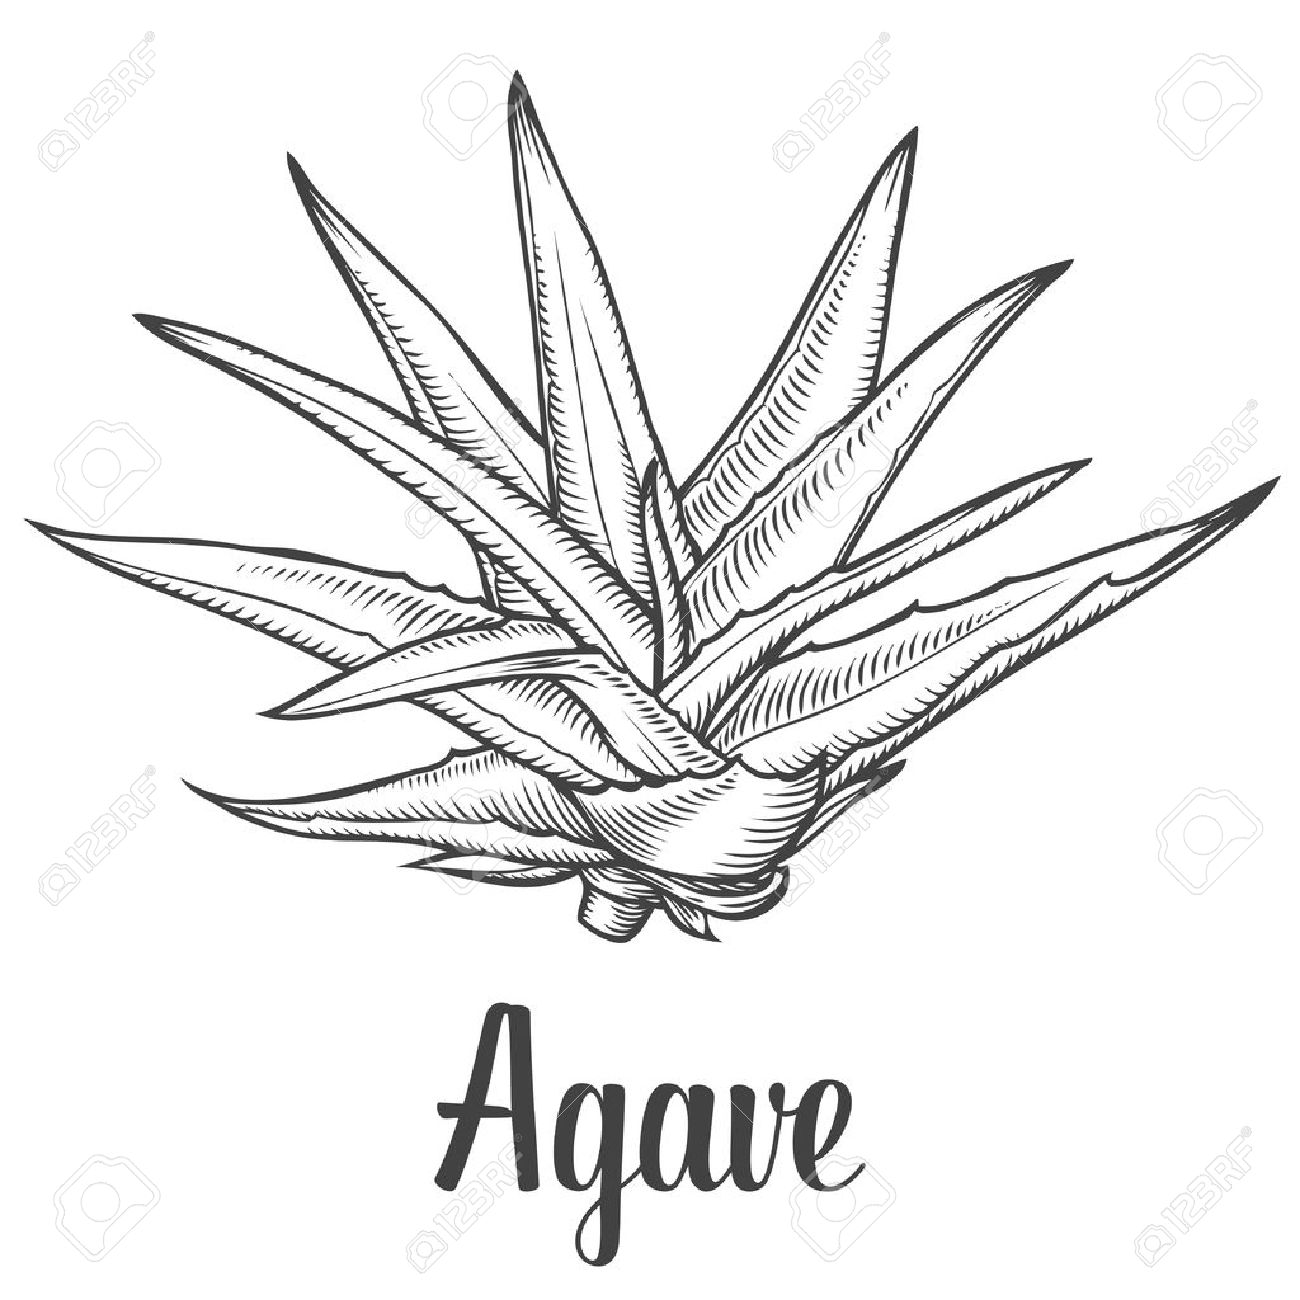 Agave clipart #15, Download drawings